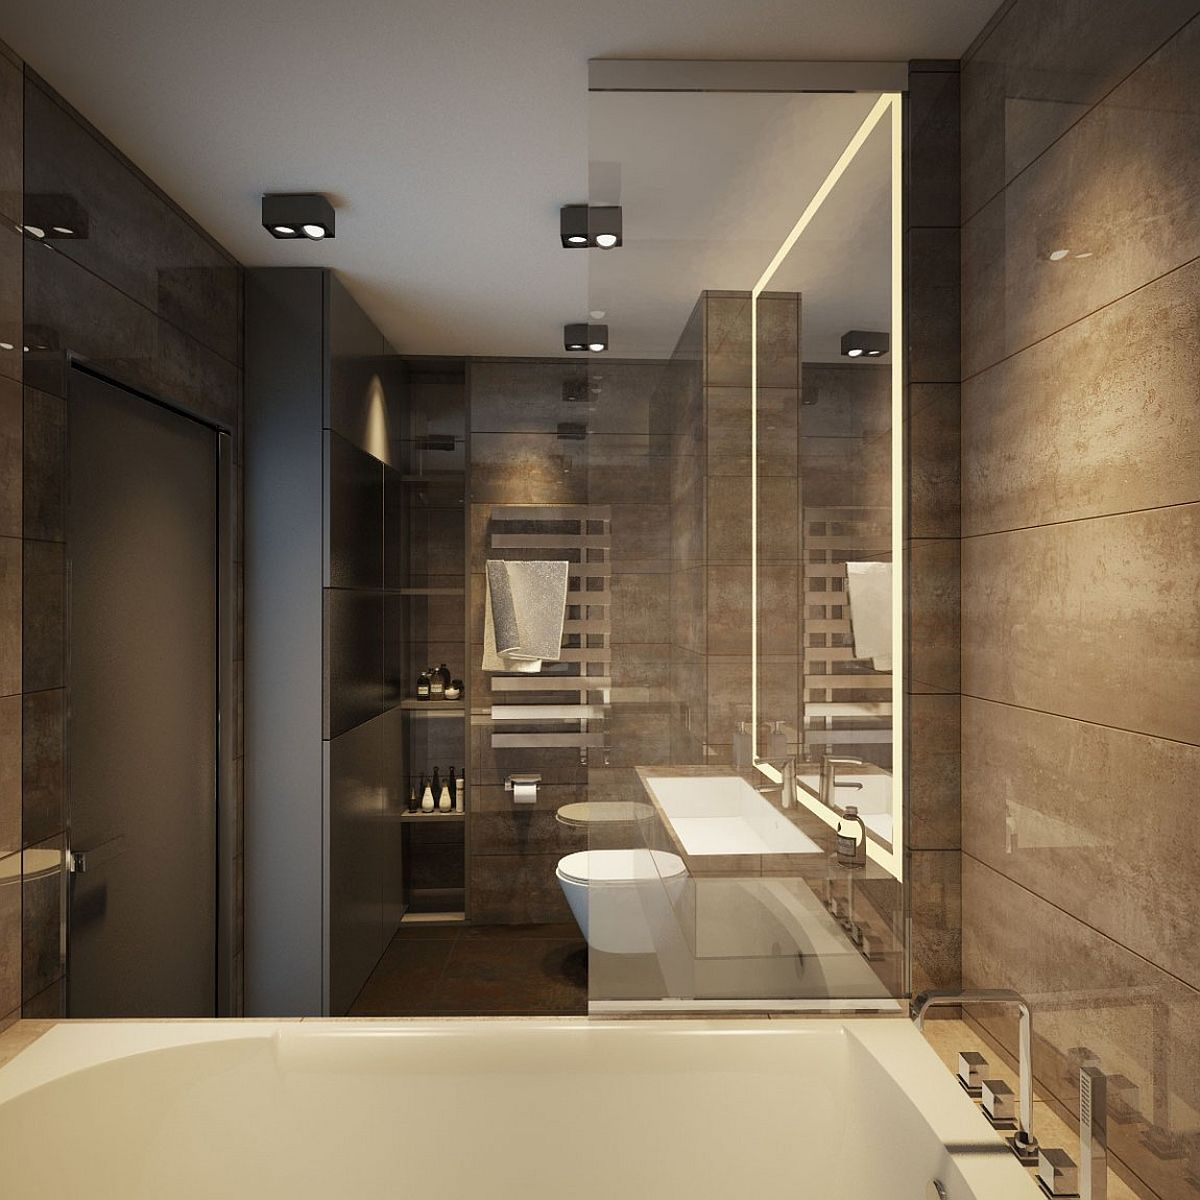 Architecture Bathroom Design Apartment Ernst In Kiev Inspired By Posh Hotel Ambiance